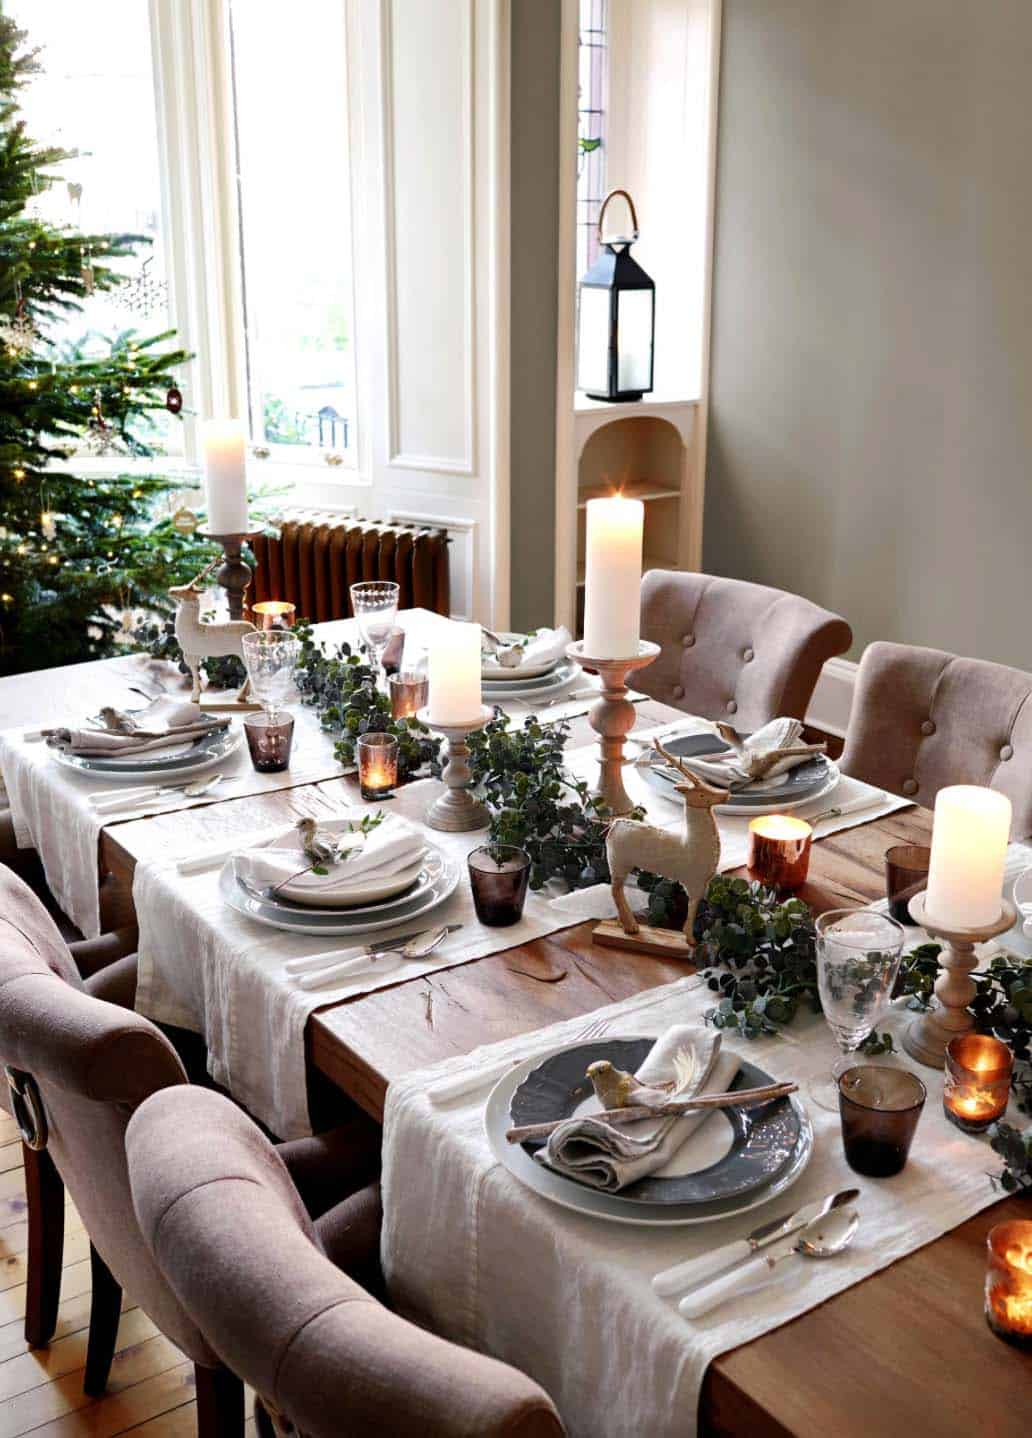 Inspiring Dining Table Christmas Decor Ideas-17-1 Kindesign